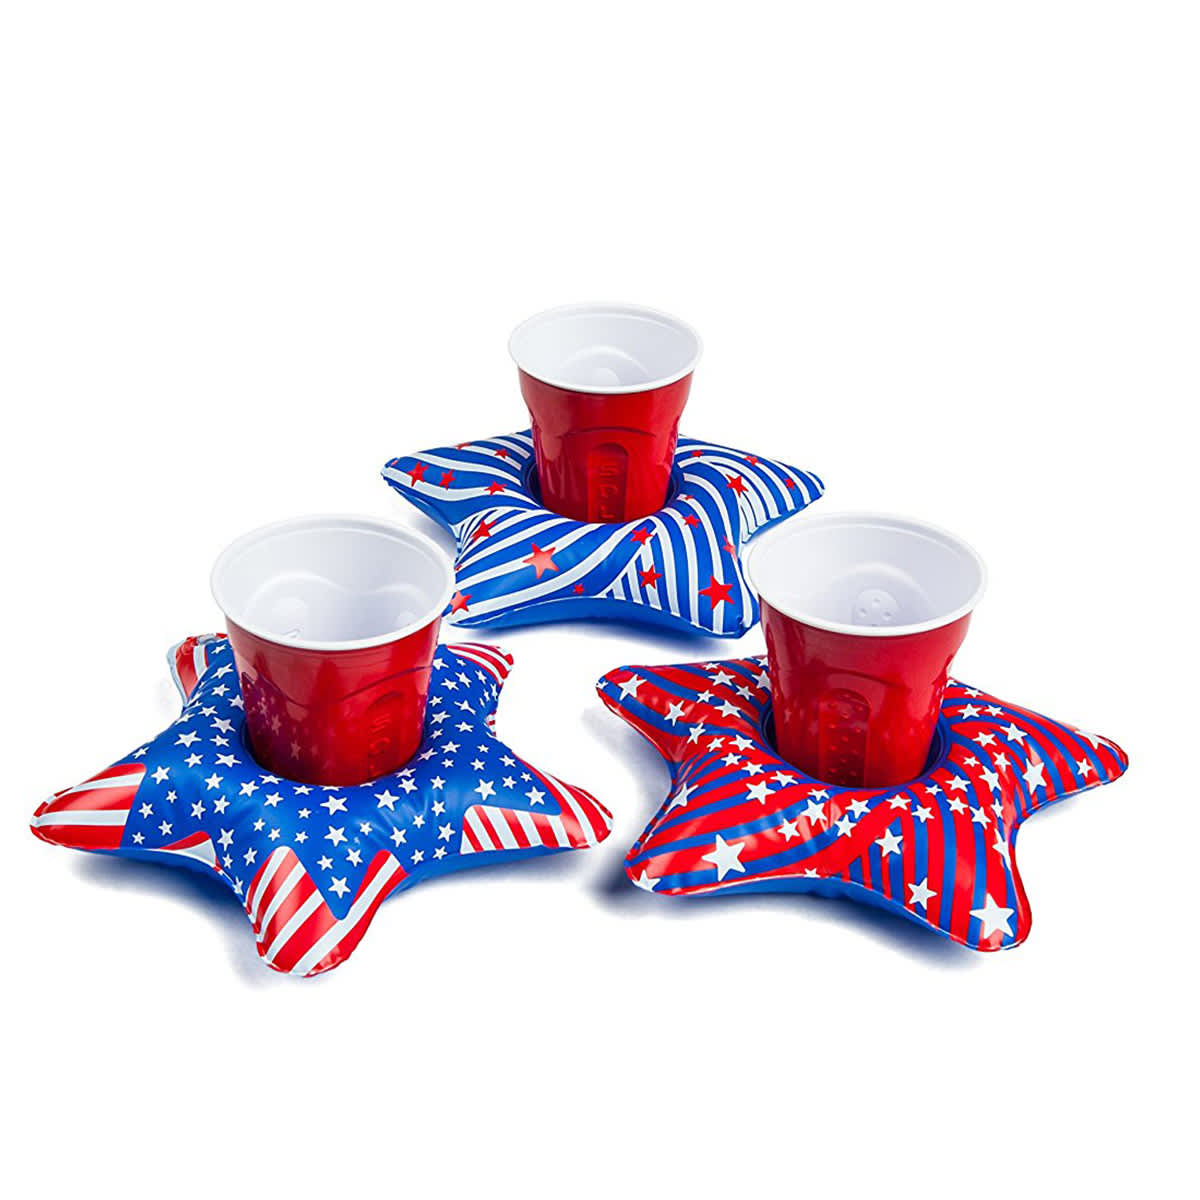 10 Festive 4th of July Decorations for $10 or Less: gallery image 3